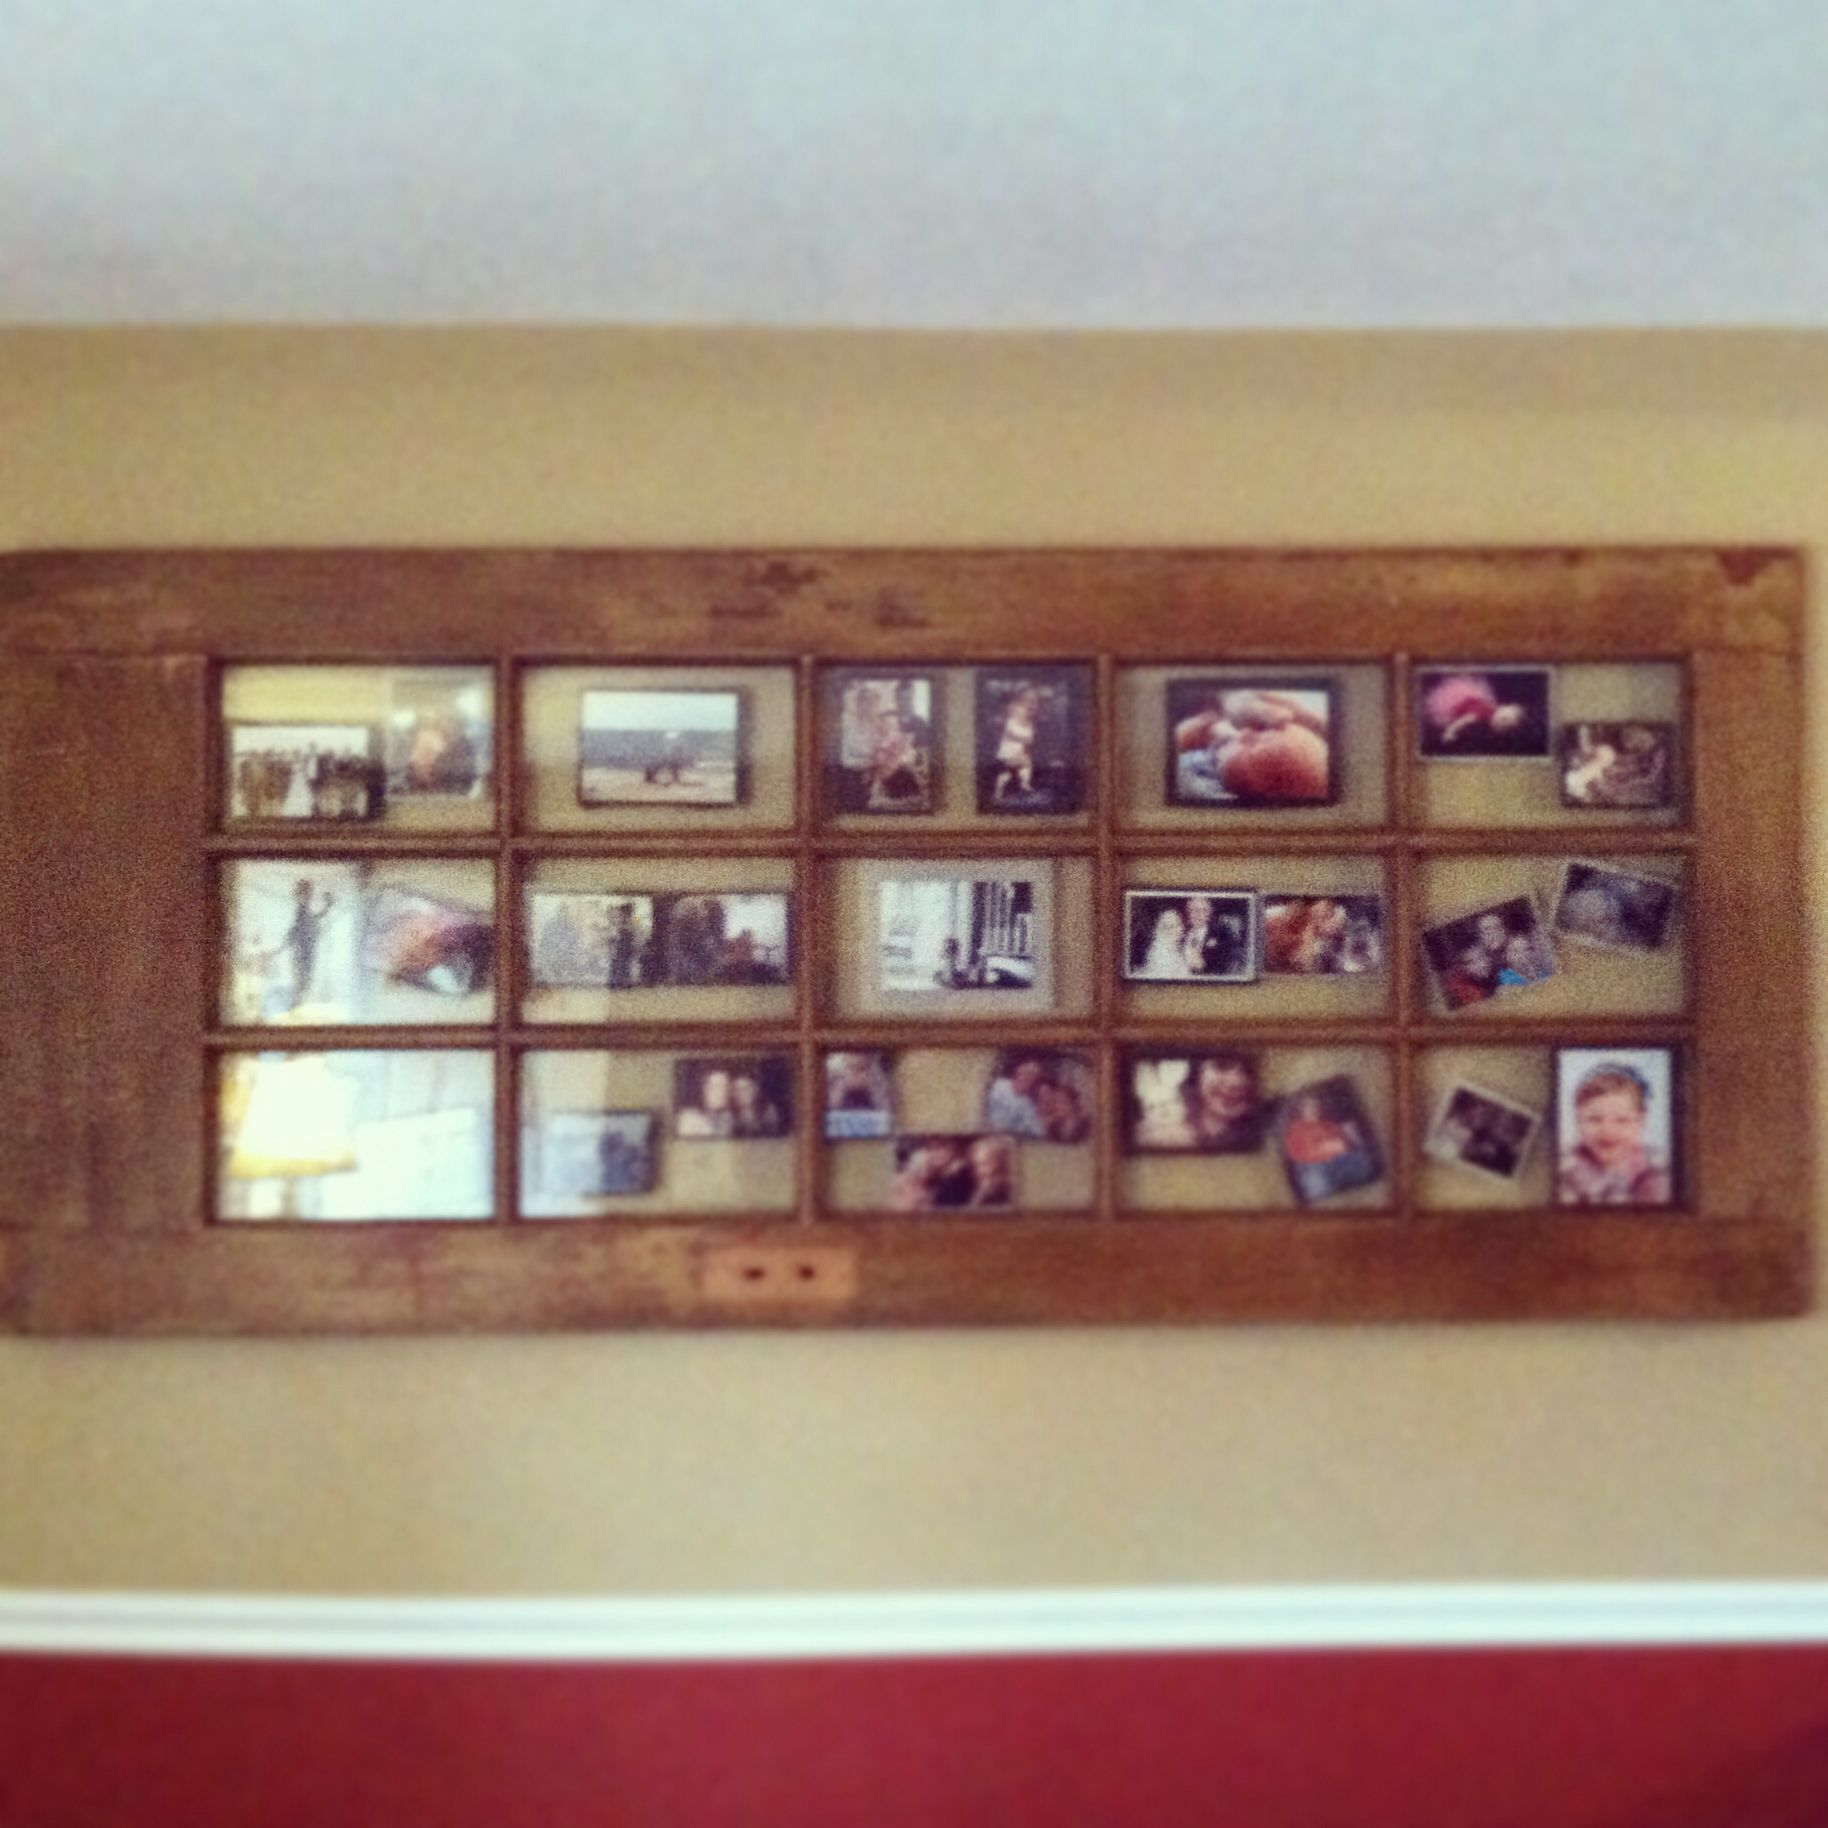 Old door used as a picture frame and wall art | Food For Thought ...